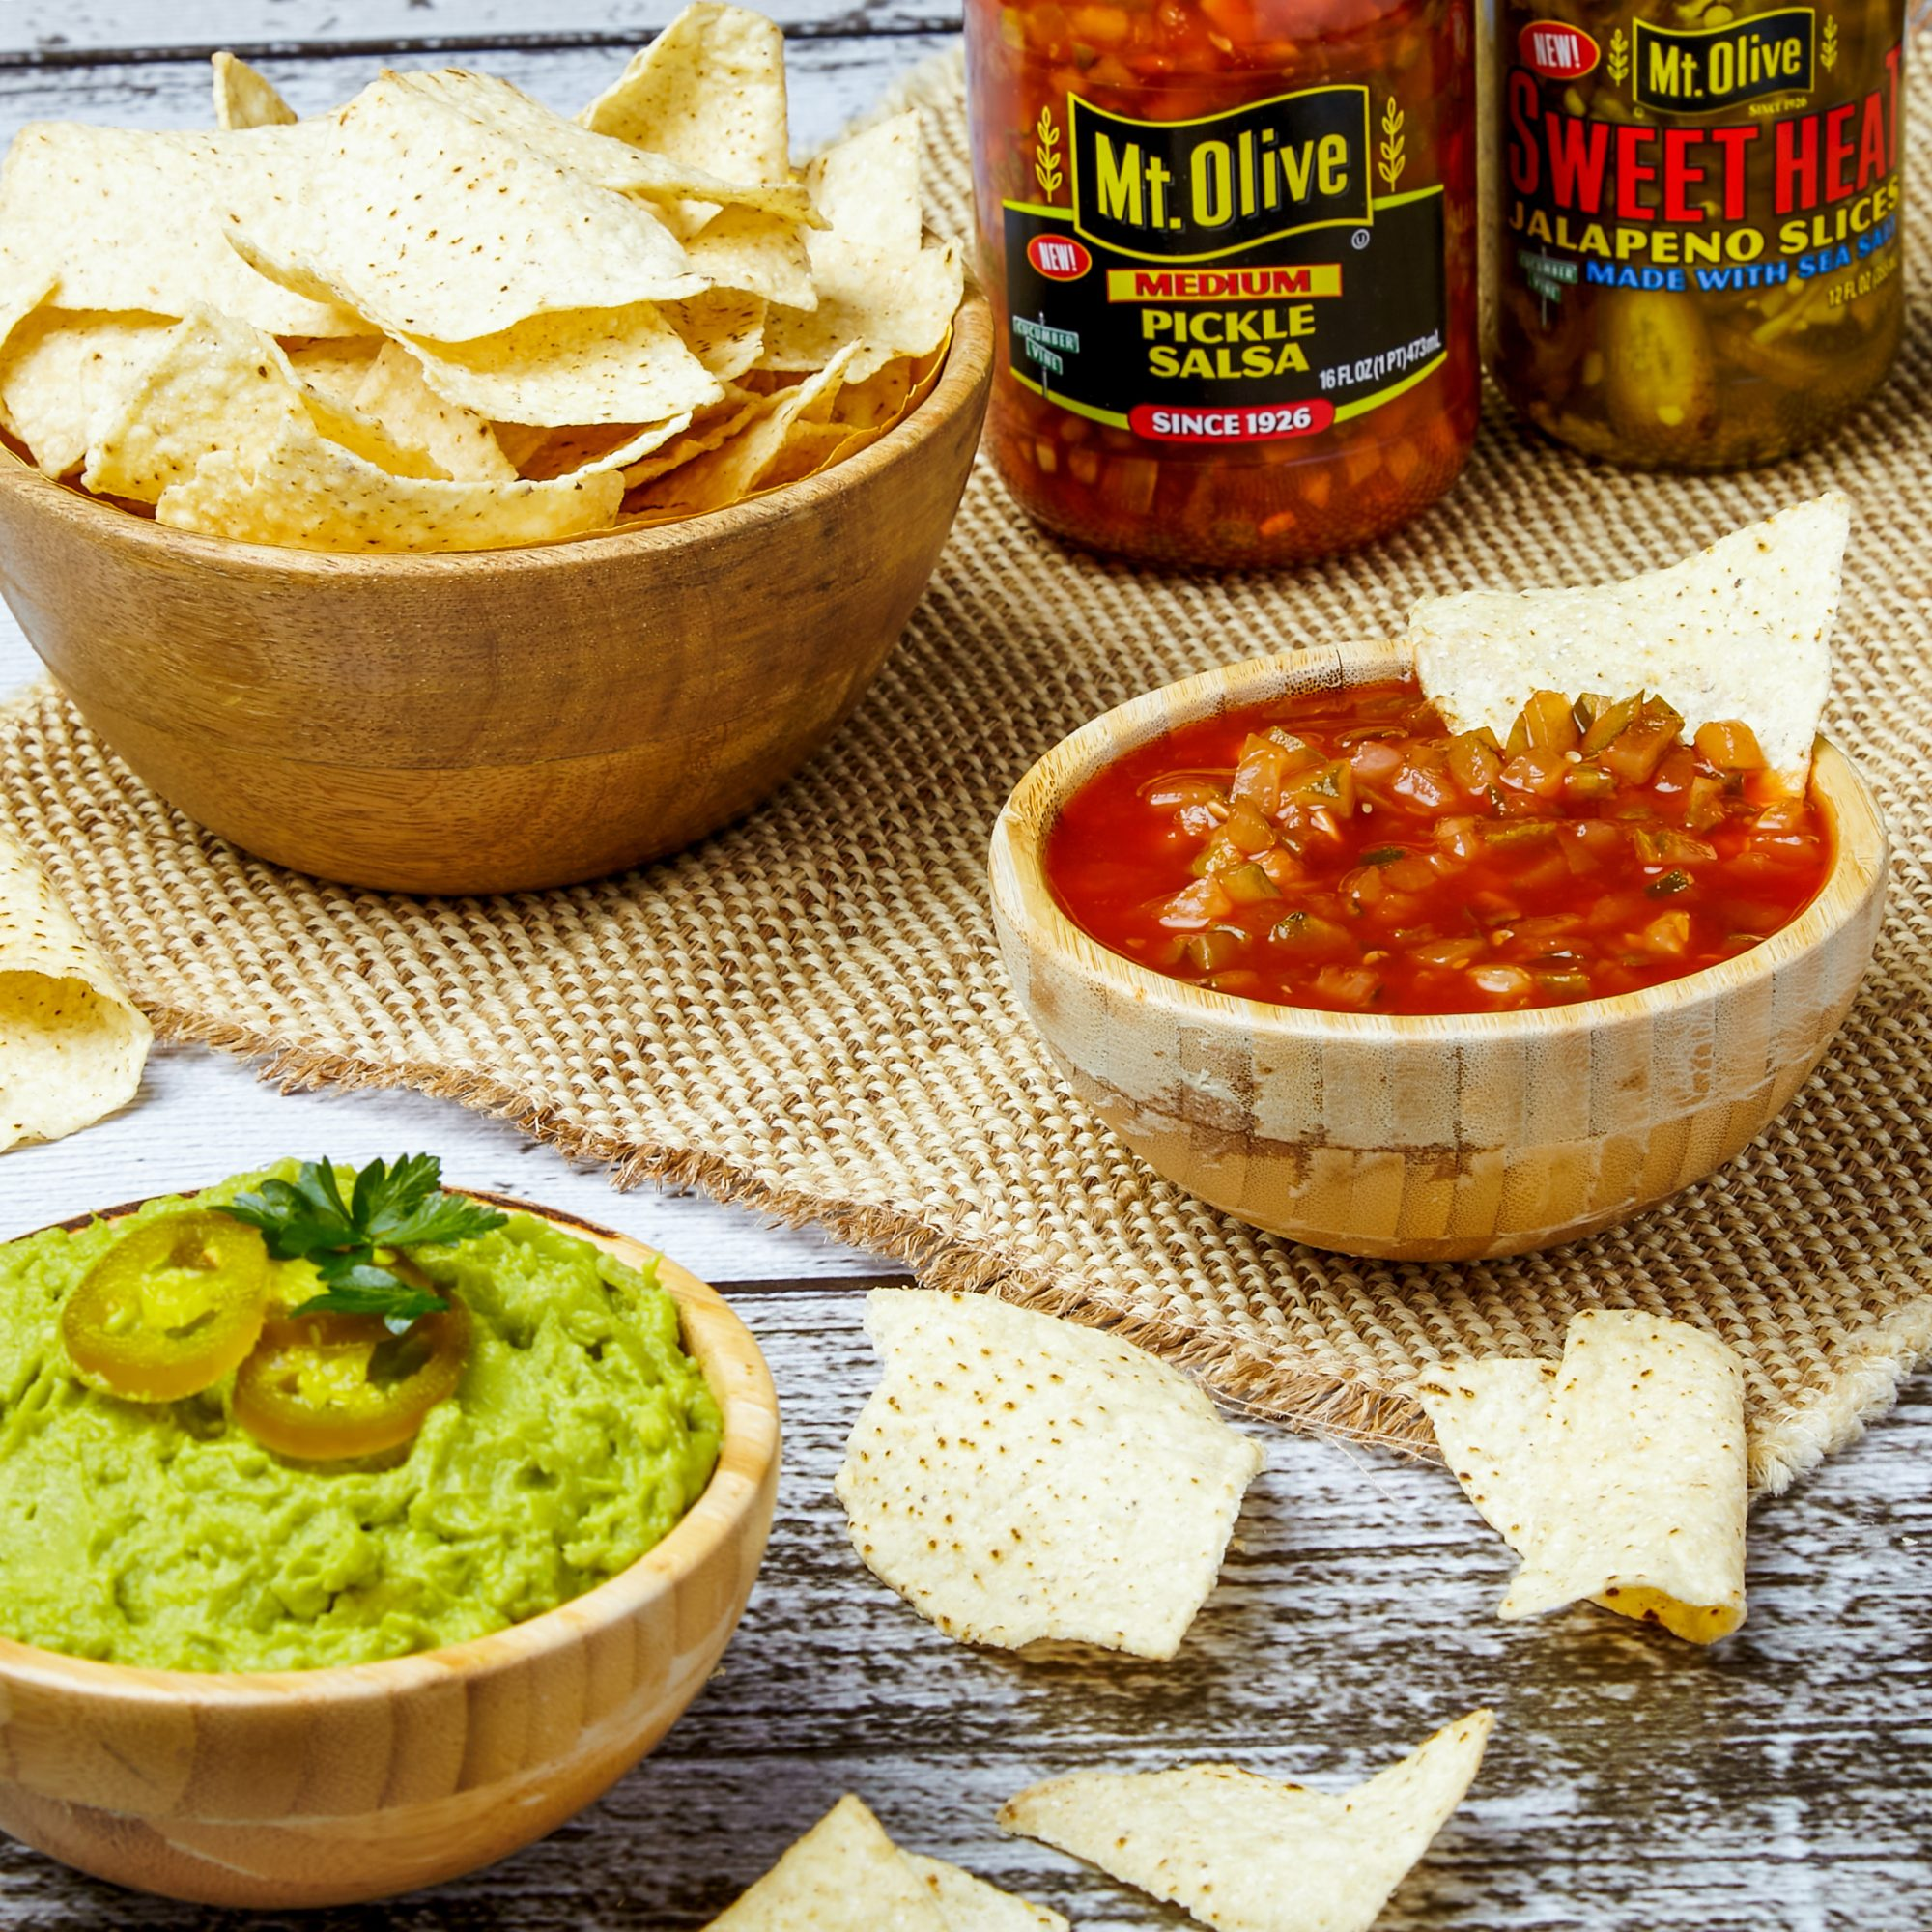 Mt. Olive Pickles Co. Salsa and Chips and Guacamole